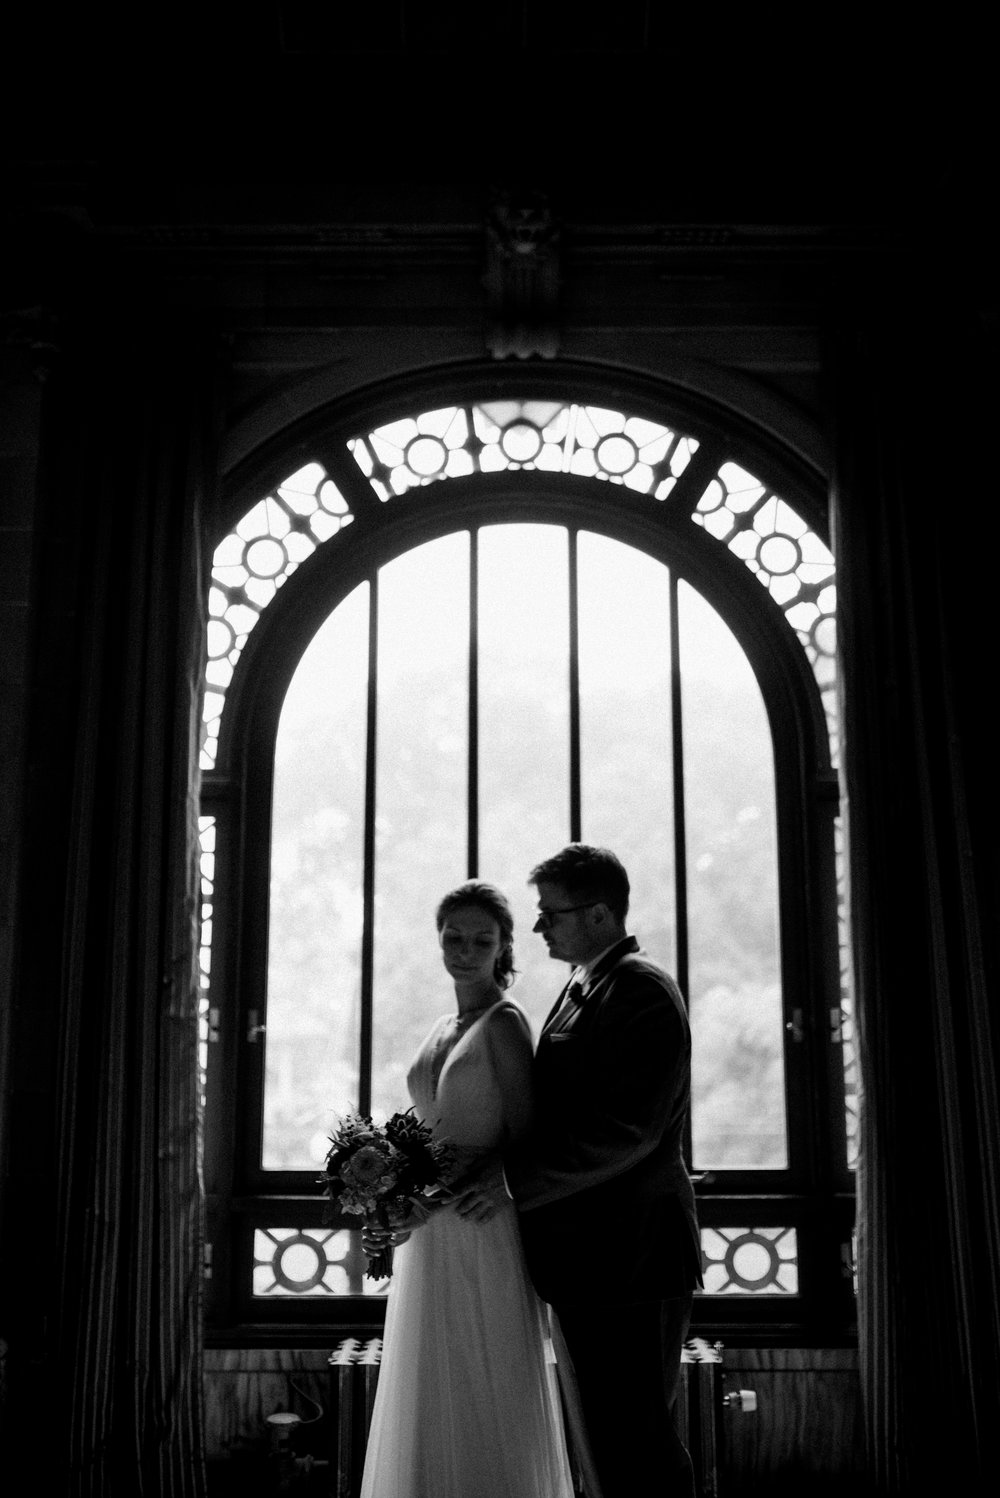 cincinnati-wedding-photographer-chelsea-hall-photography-memorial-hall-16.jpg